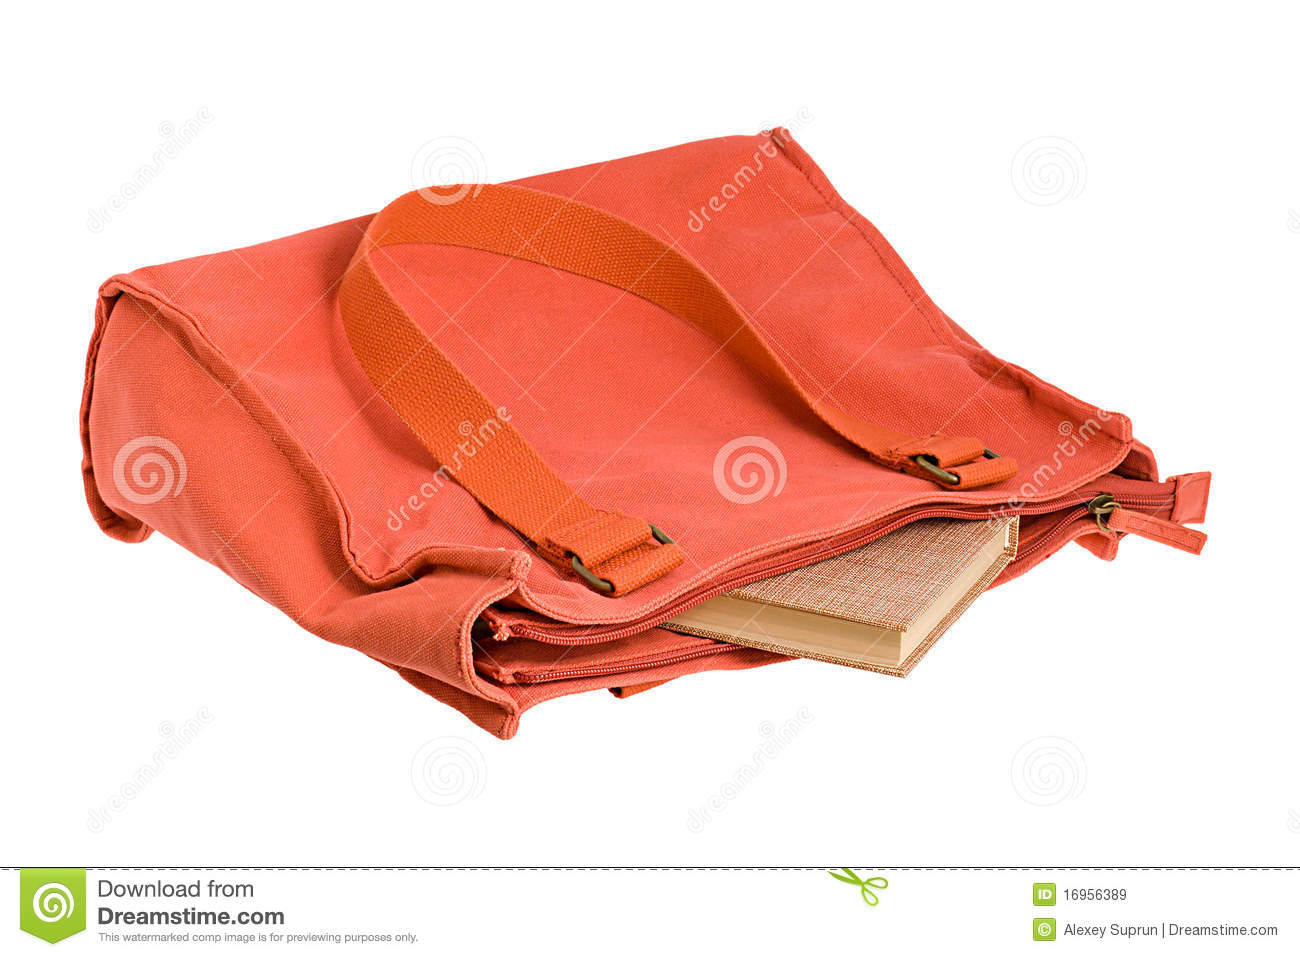 The Book Is In The Bag Royalty Free Stock Images - Image: 16956389